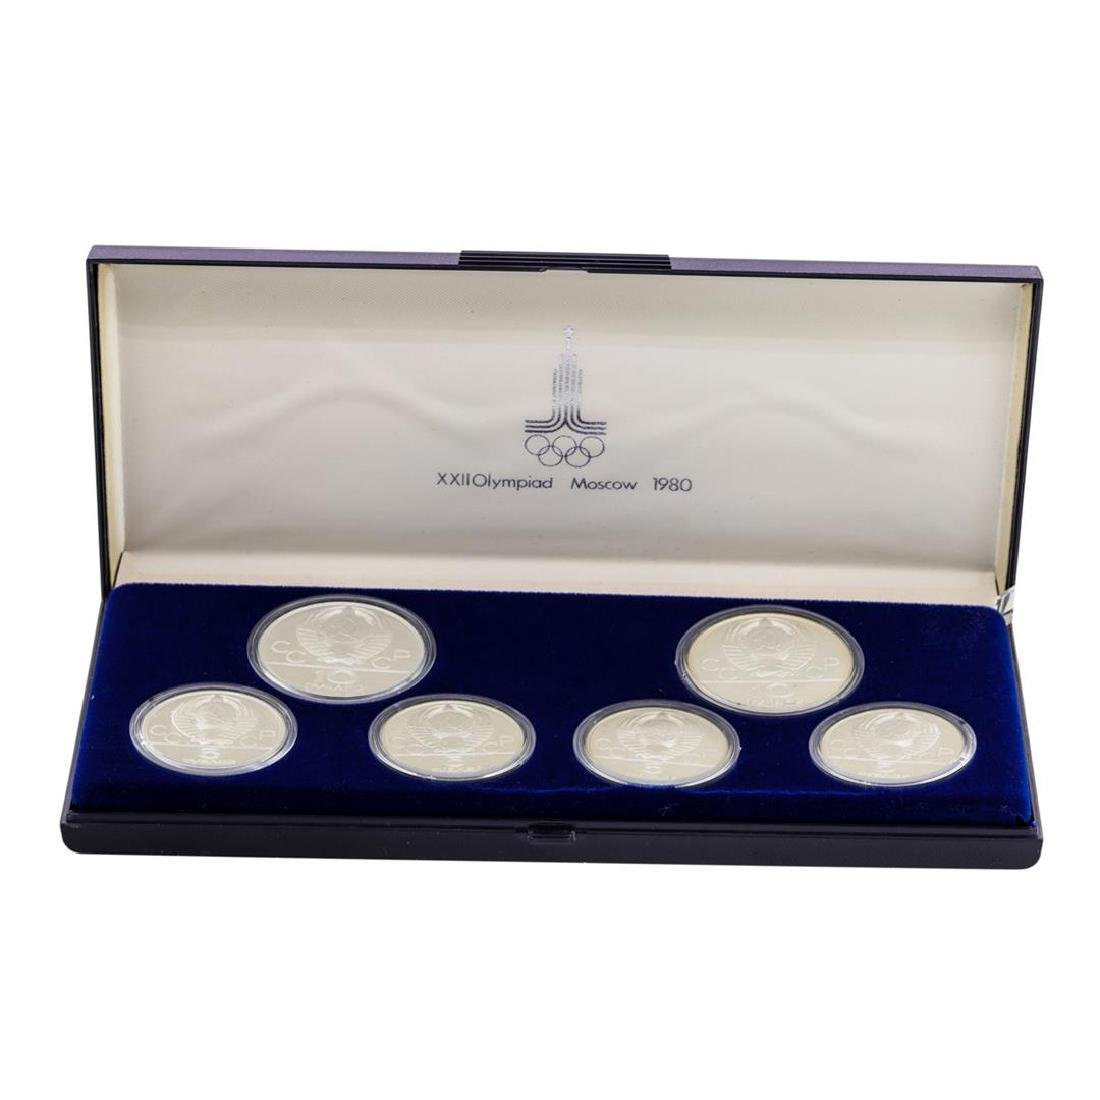 1980 Moscow Olympics (6) Coin Proof Silver Set